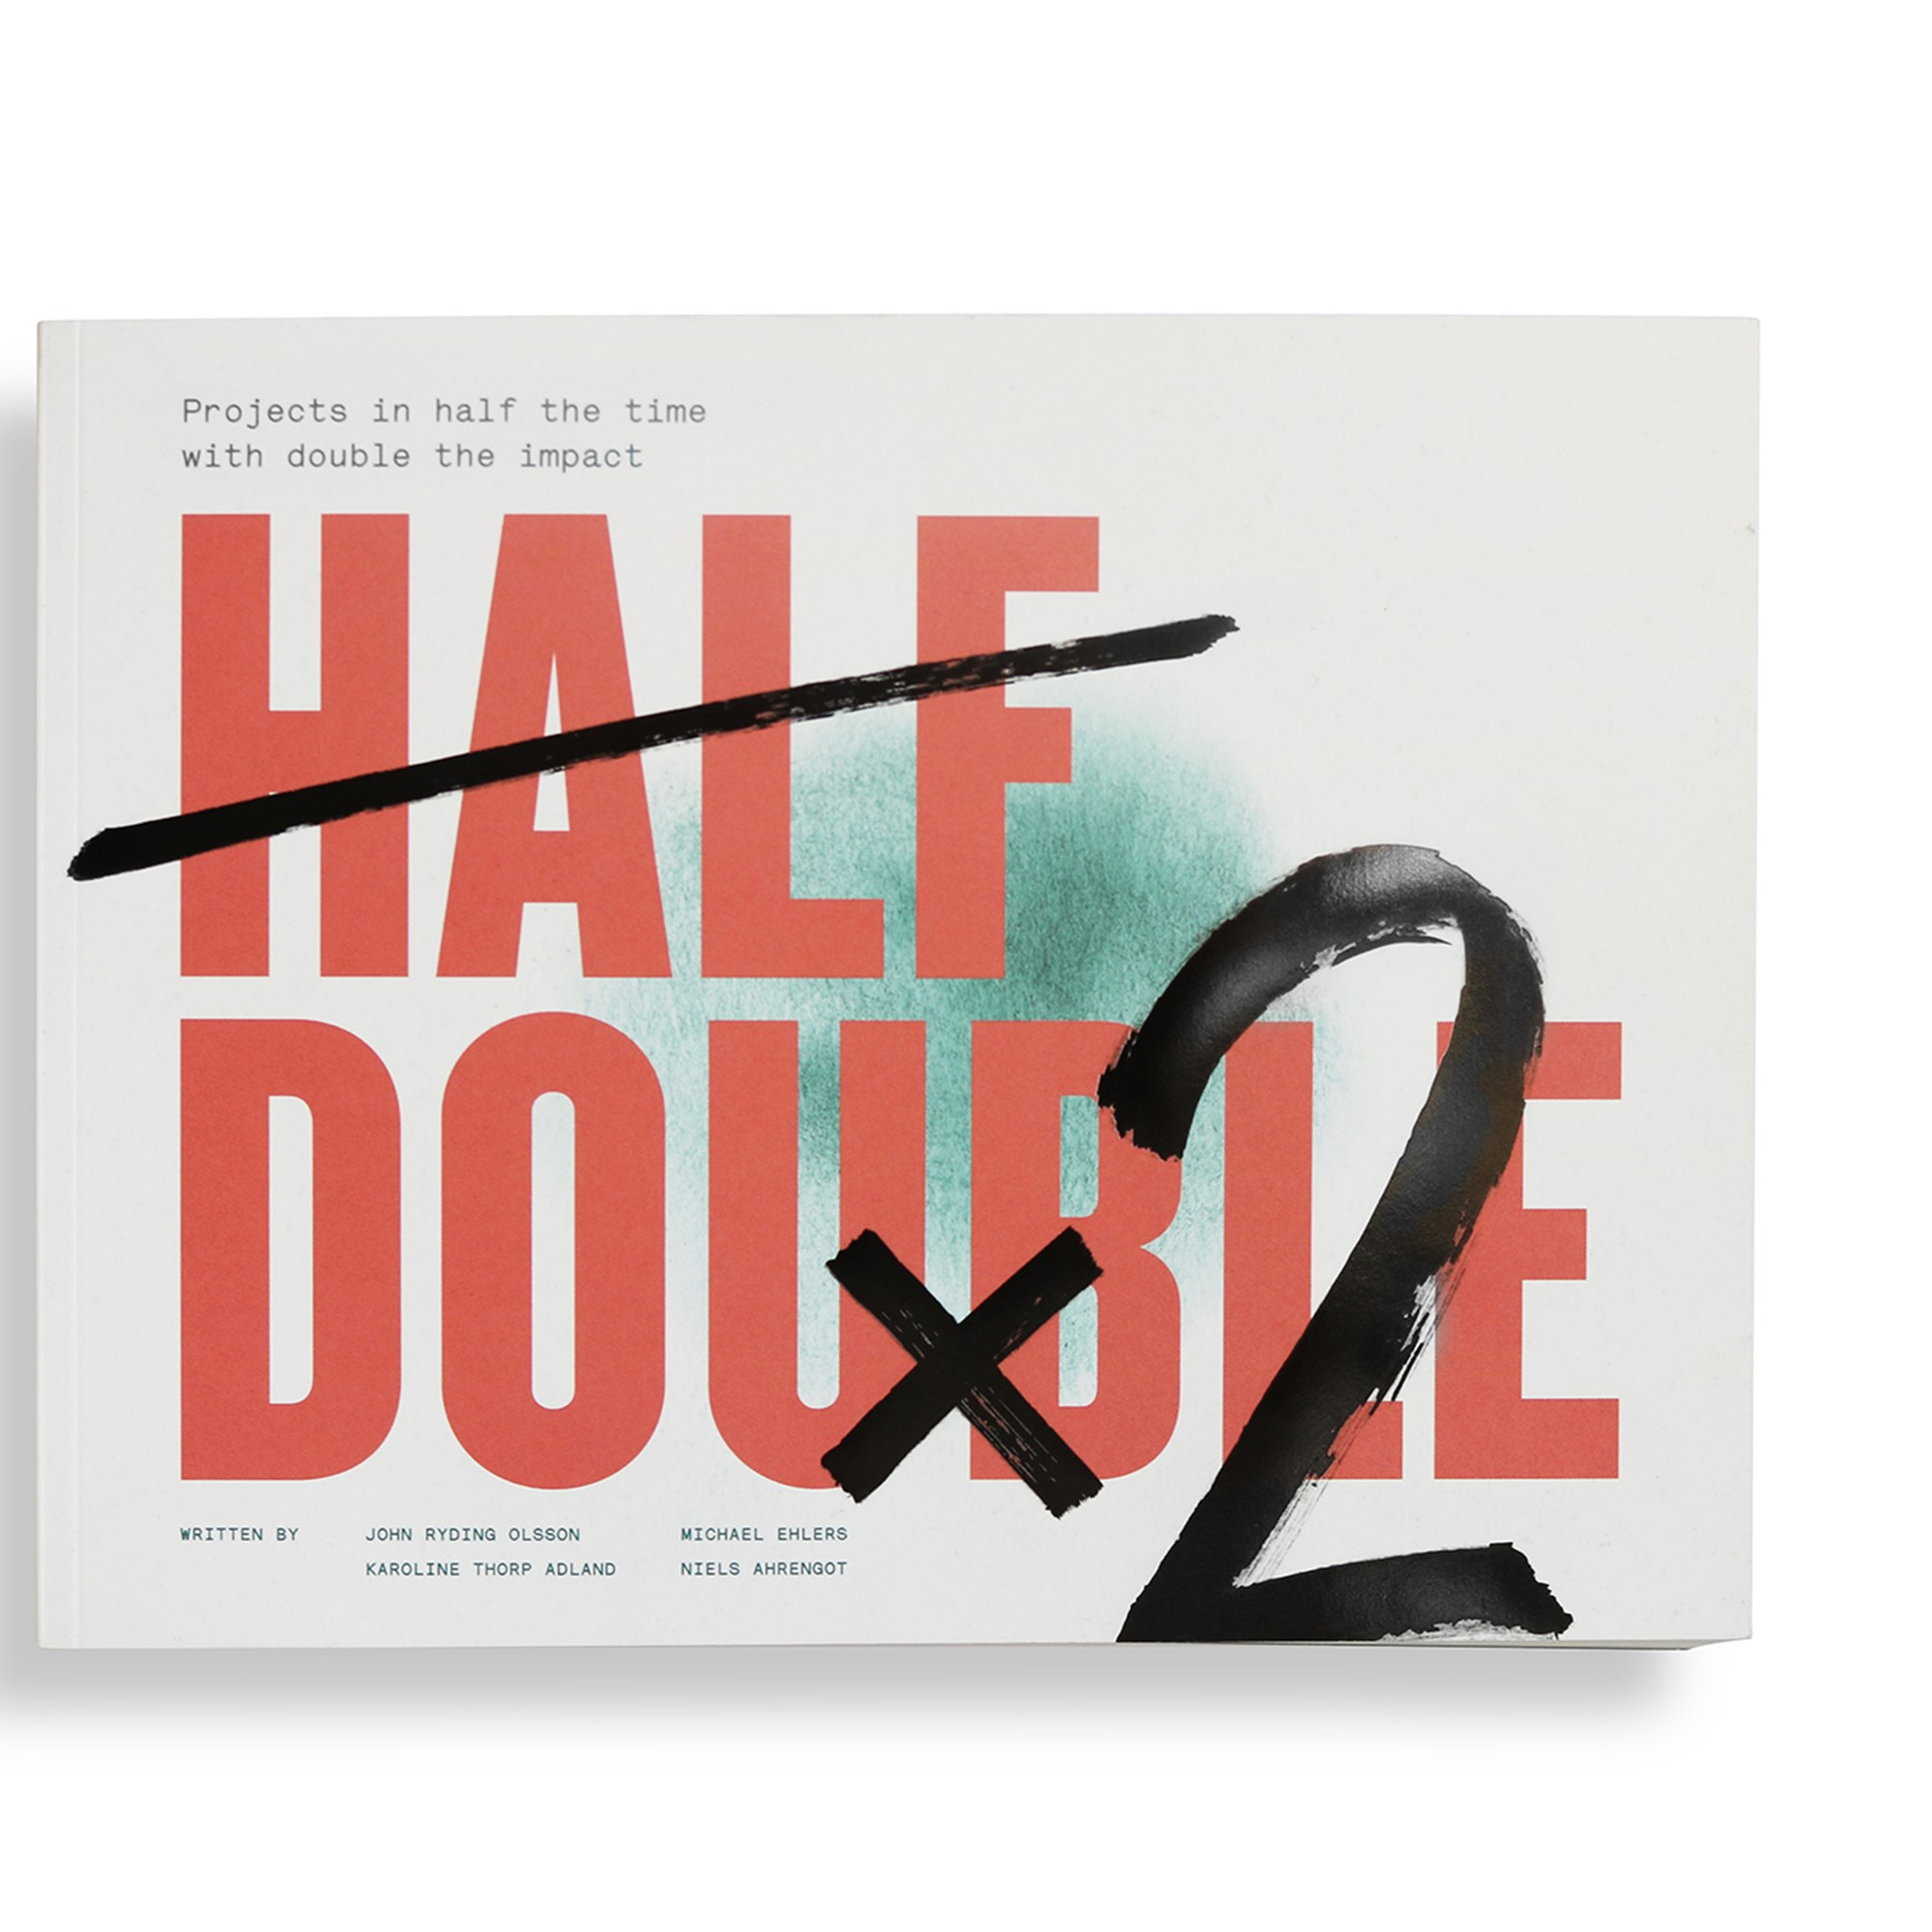 The Half Double book